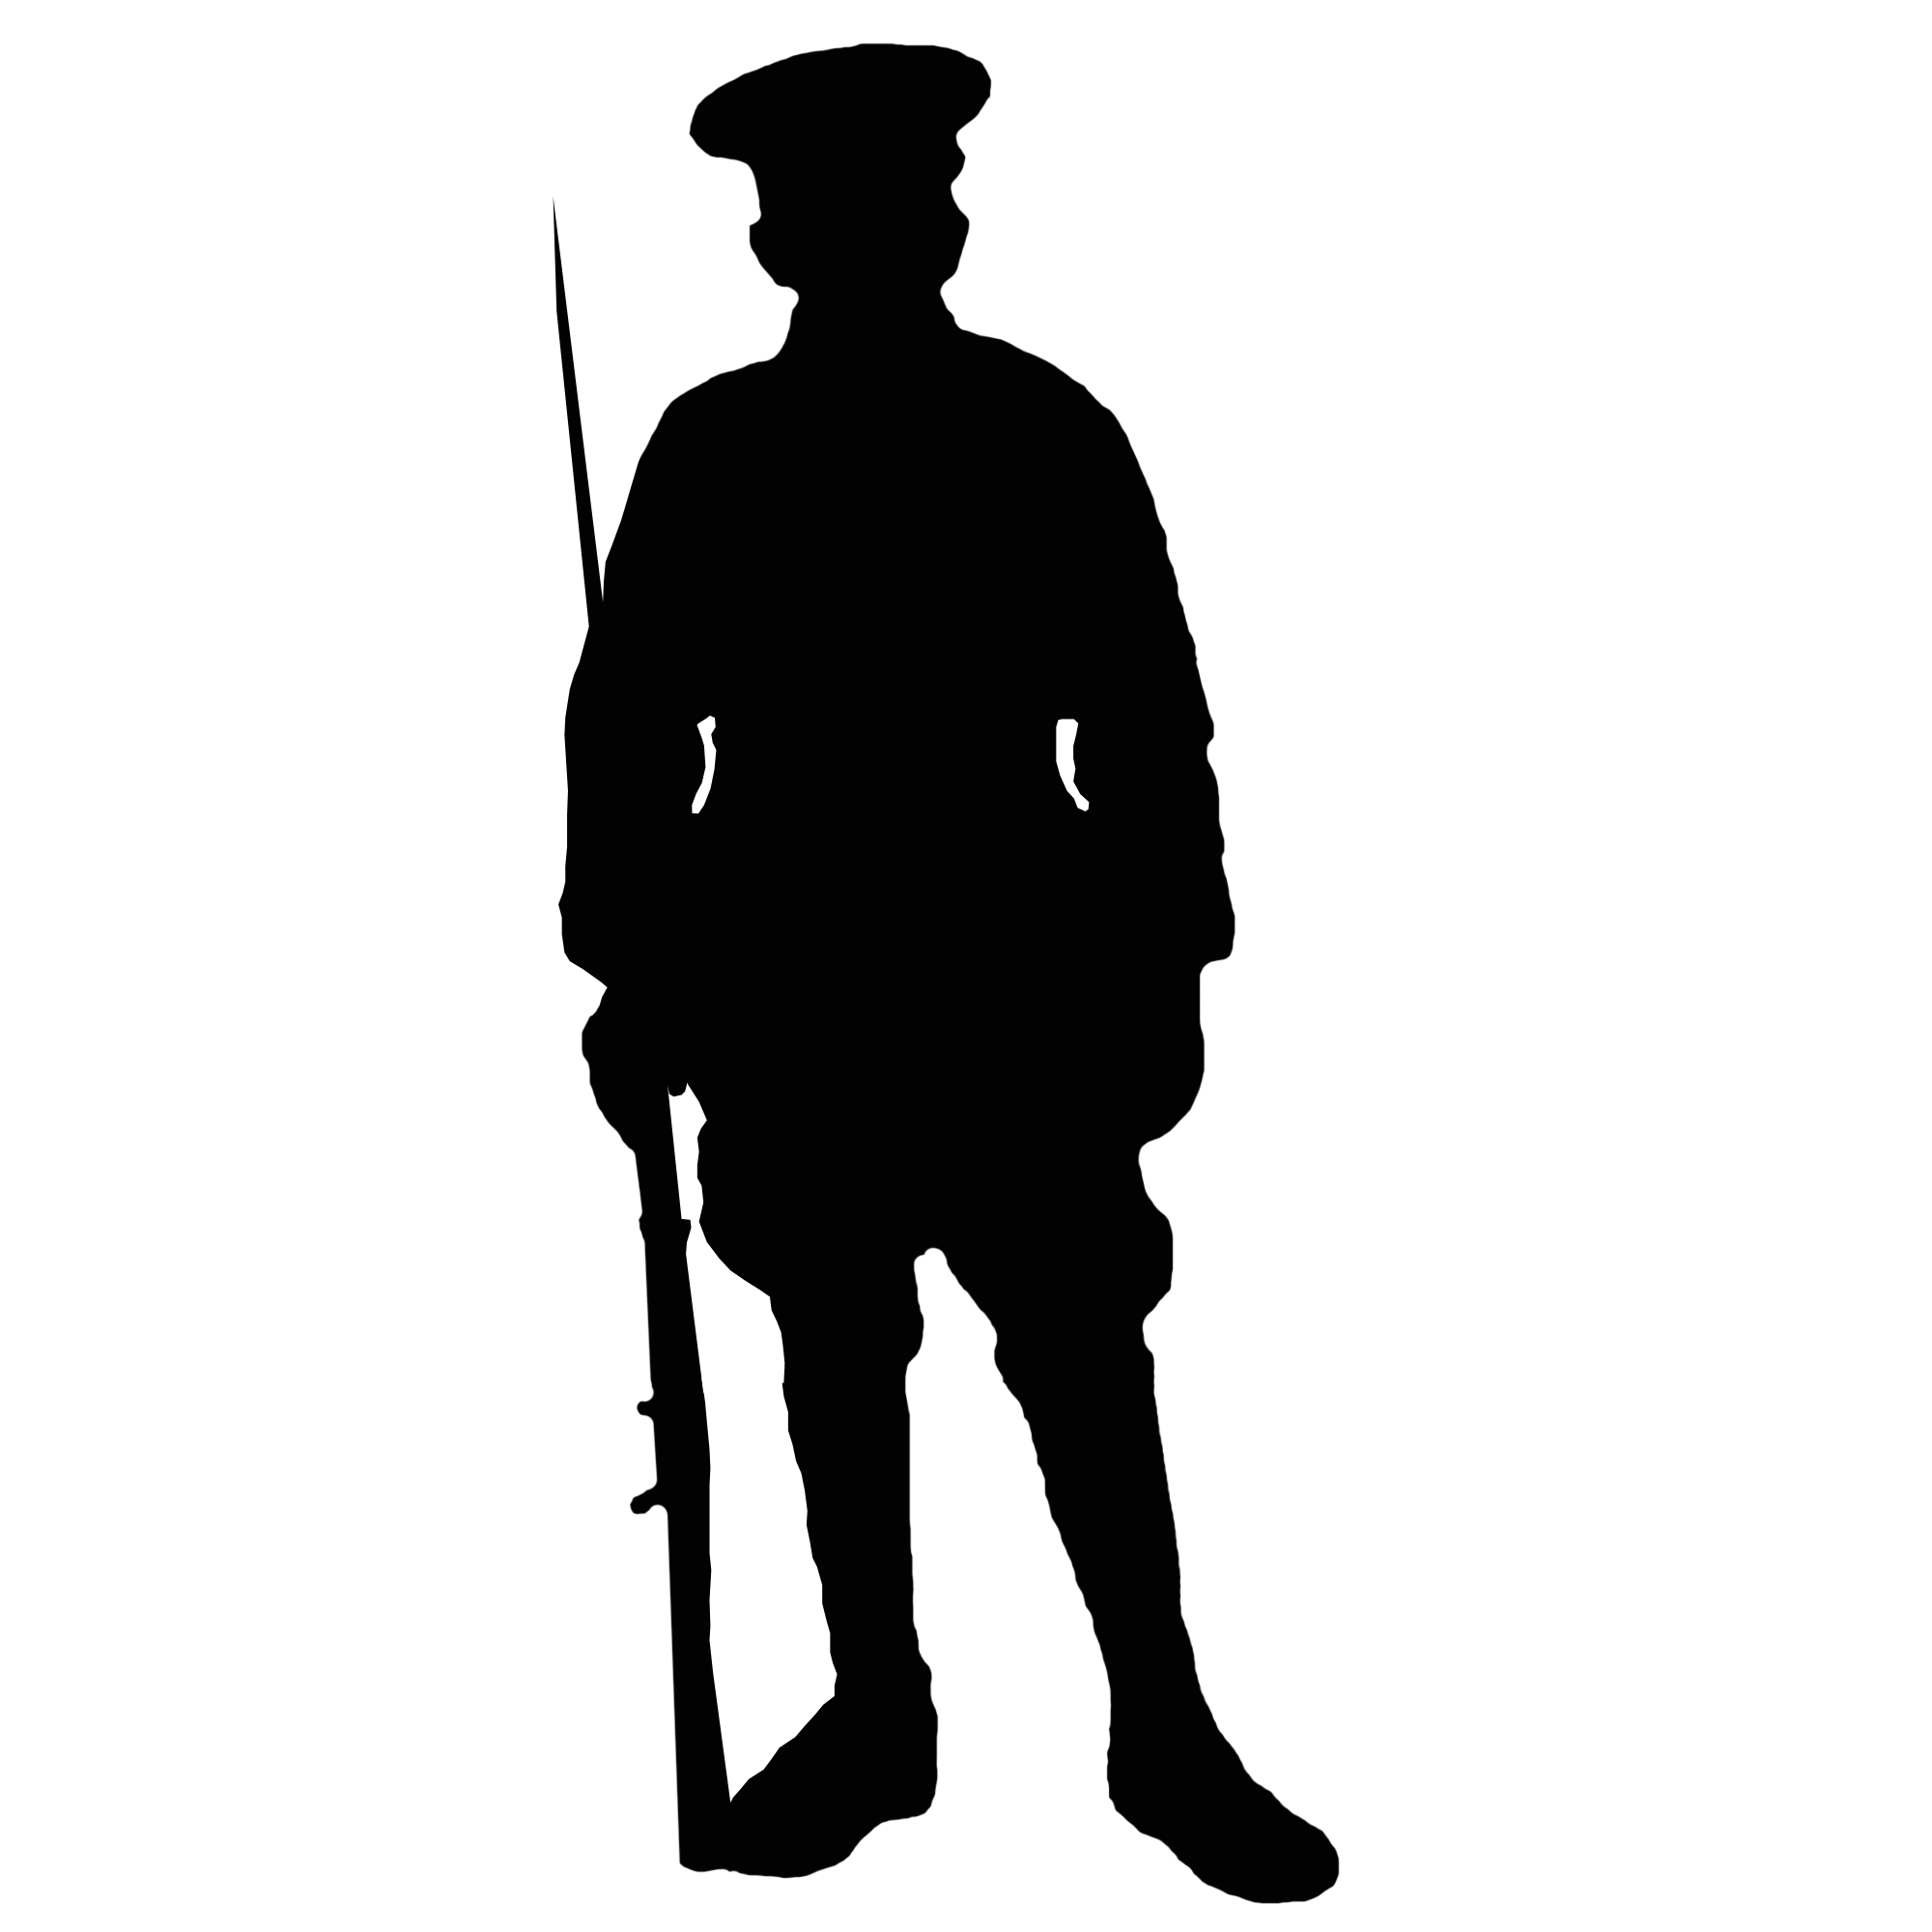 2000x2000 Filesilhouette 279799 1280.png